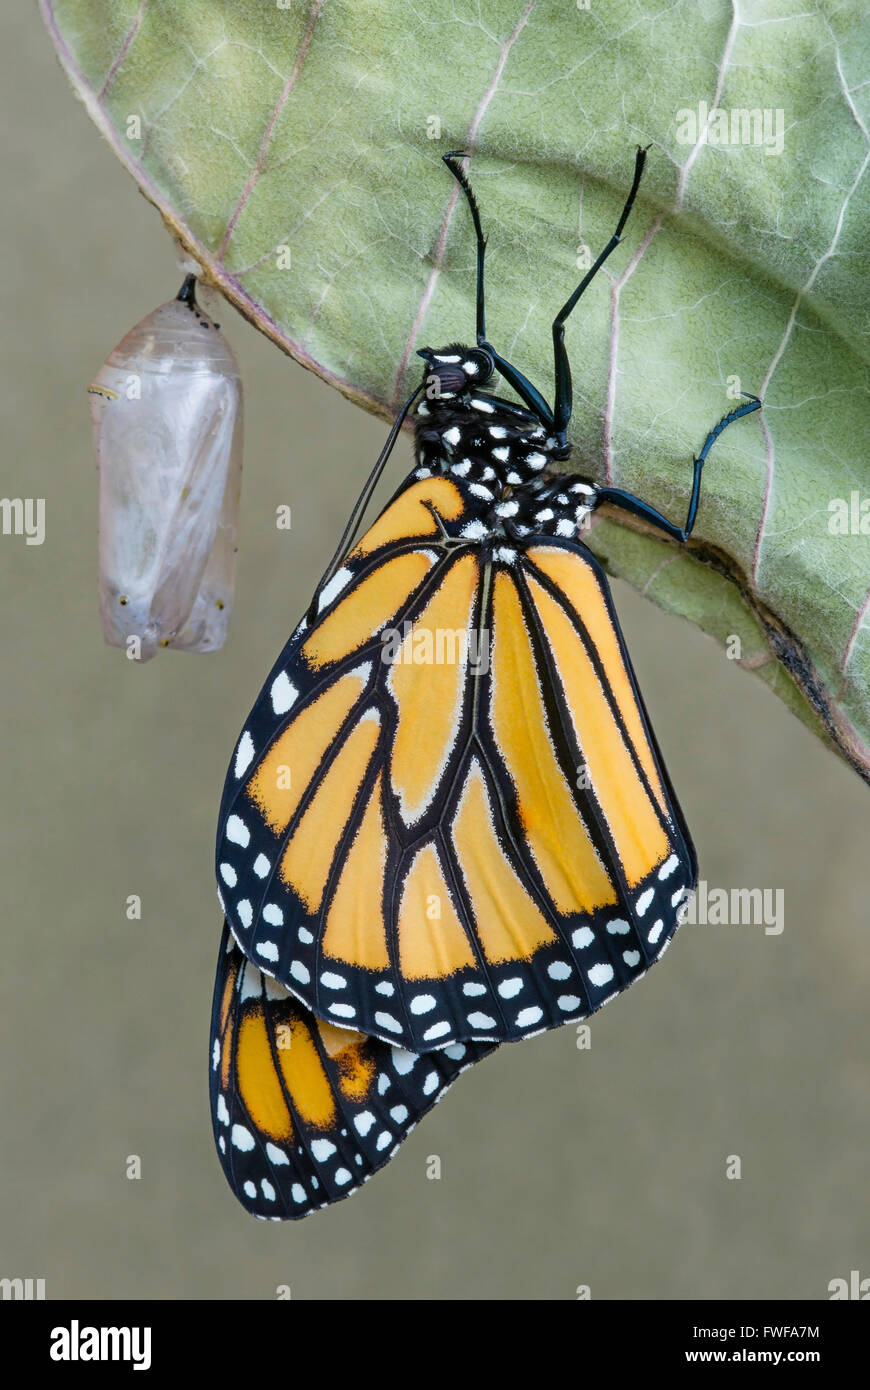 Monarch Butterfly Danaus plexippus adult just emerged from chrysalis & drying Eastern USA - Stock Image